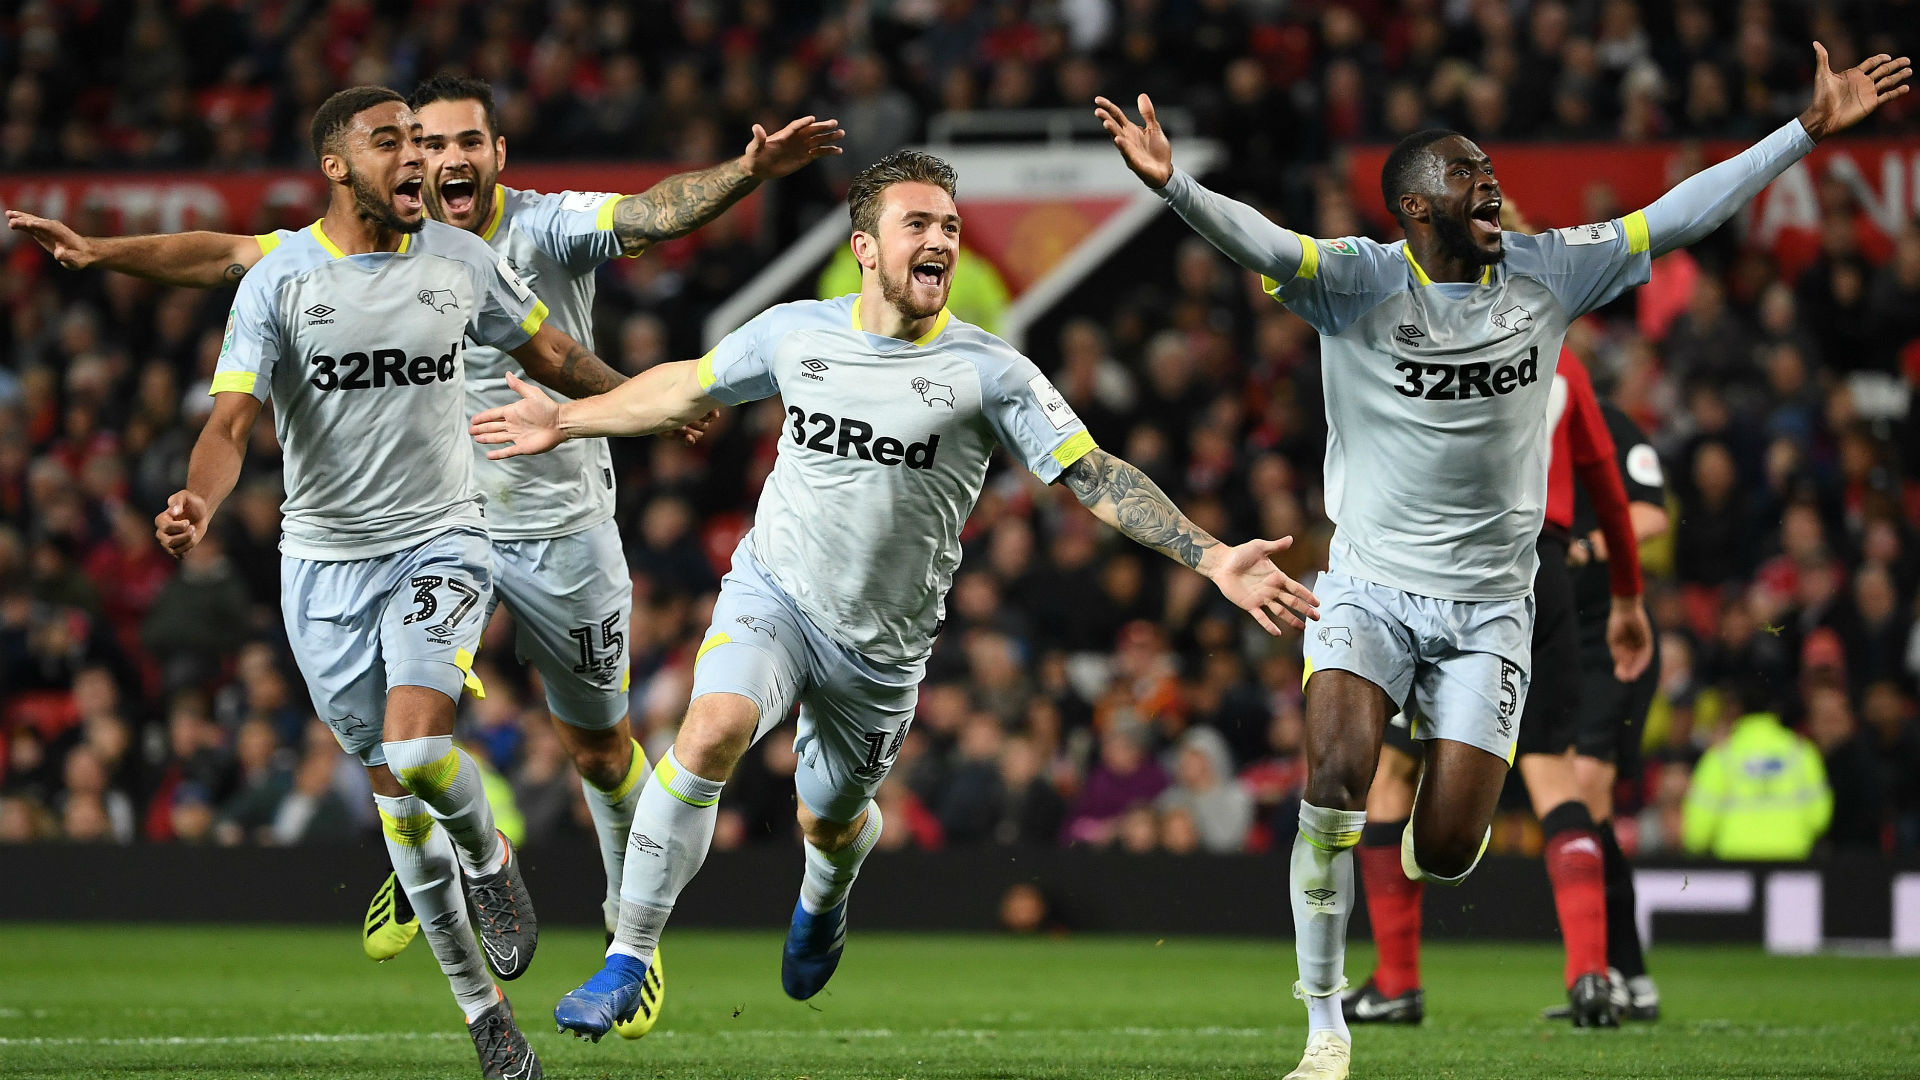 Jack Marriott Derby County Manchester United League Cup 25092018